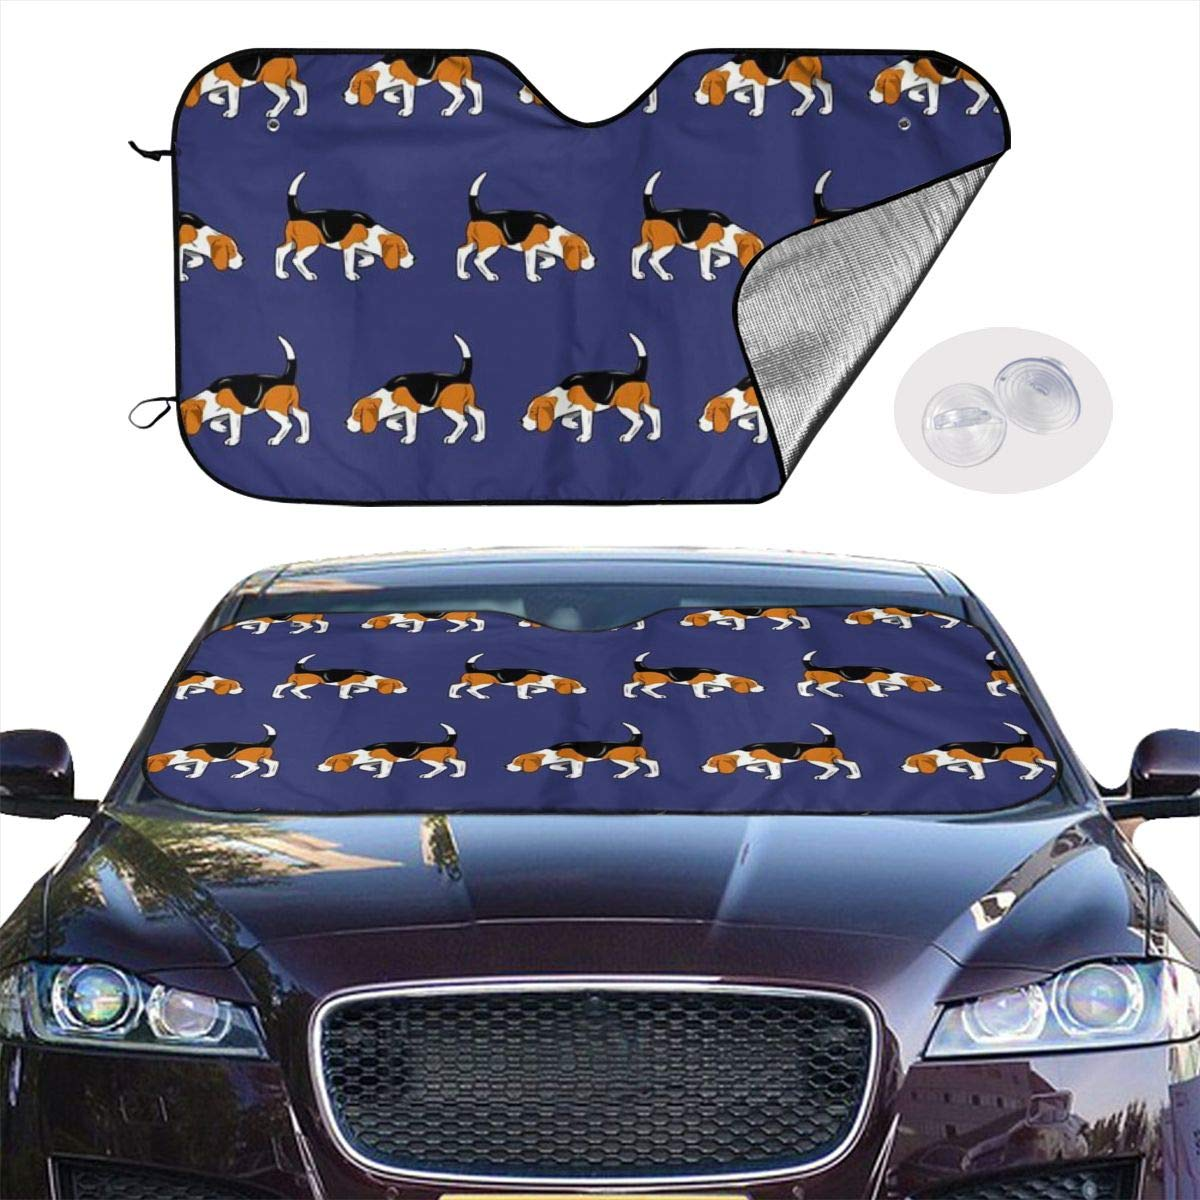 HE - Fashion Front Car Sunshade Windshield-Standard Sun Shade Keeps Vehicle Cool-UV Ray Protector Sunshade-Easy to Use Sun Shade - Beagle Dog (51.2 x 27.5 Inches) by HE - Fashion